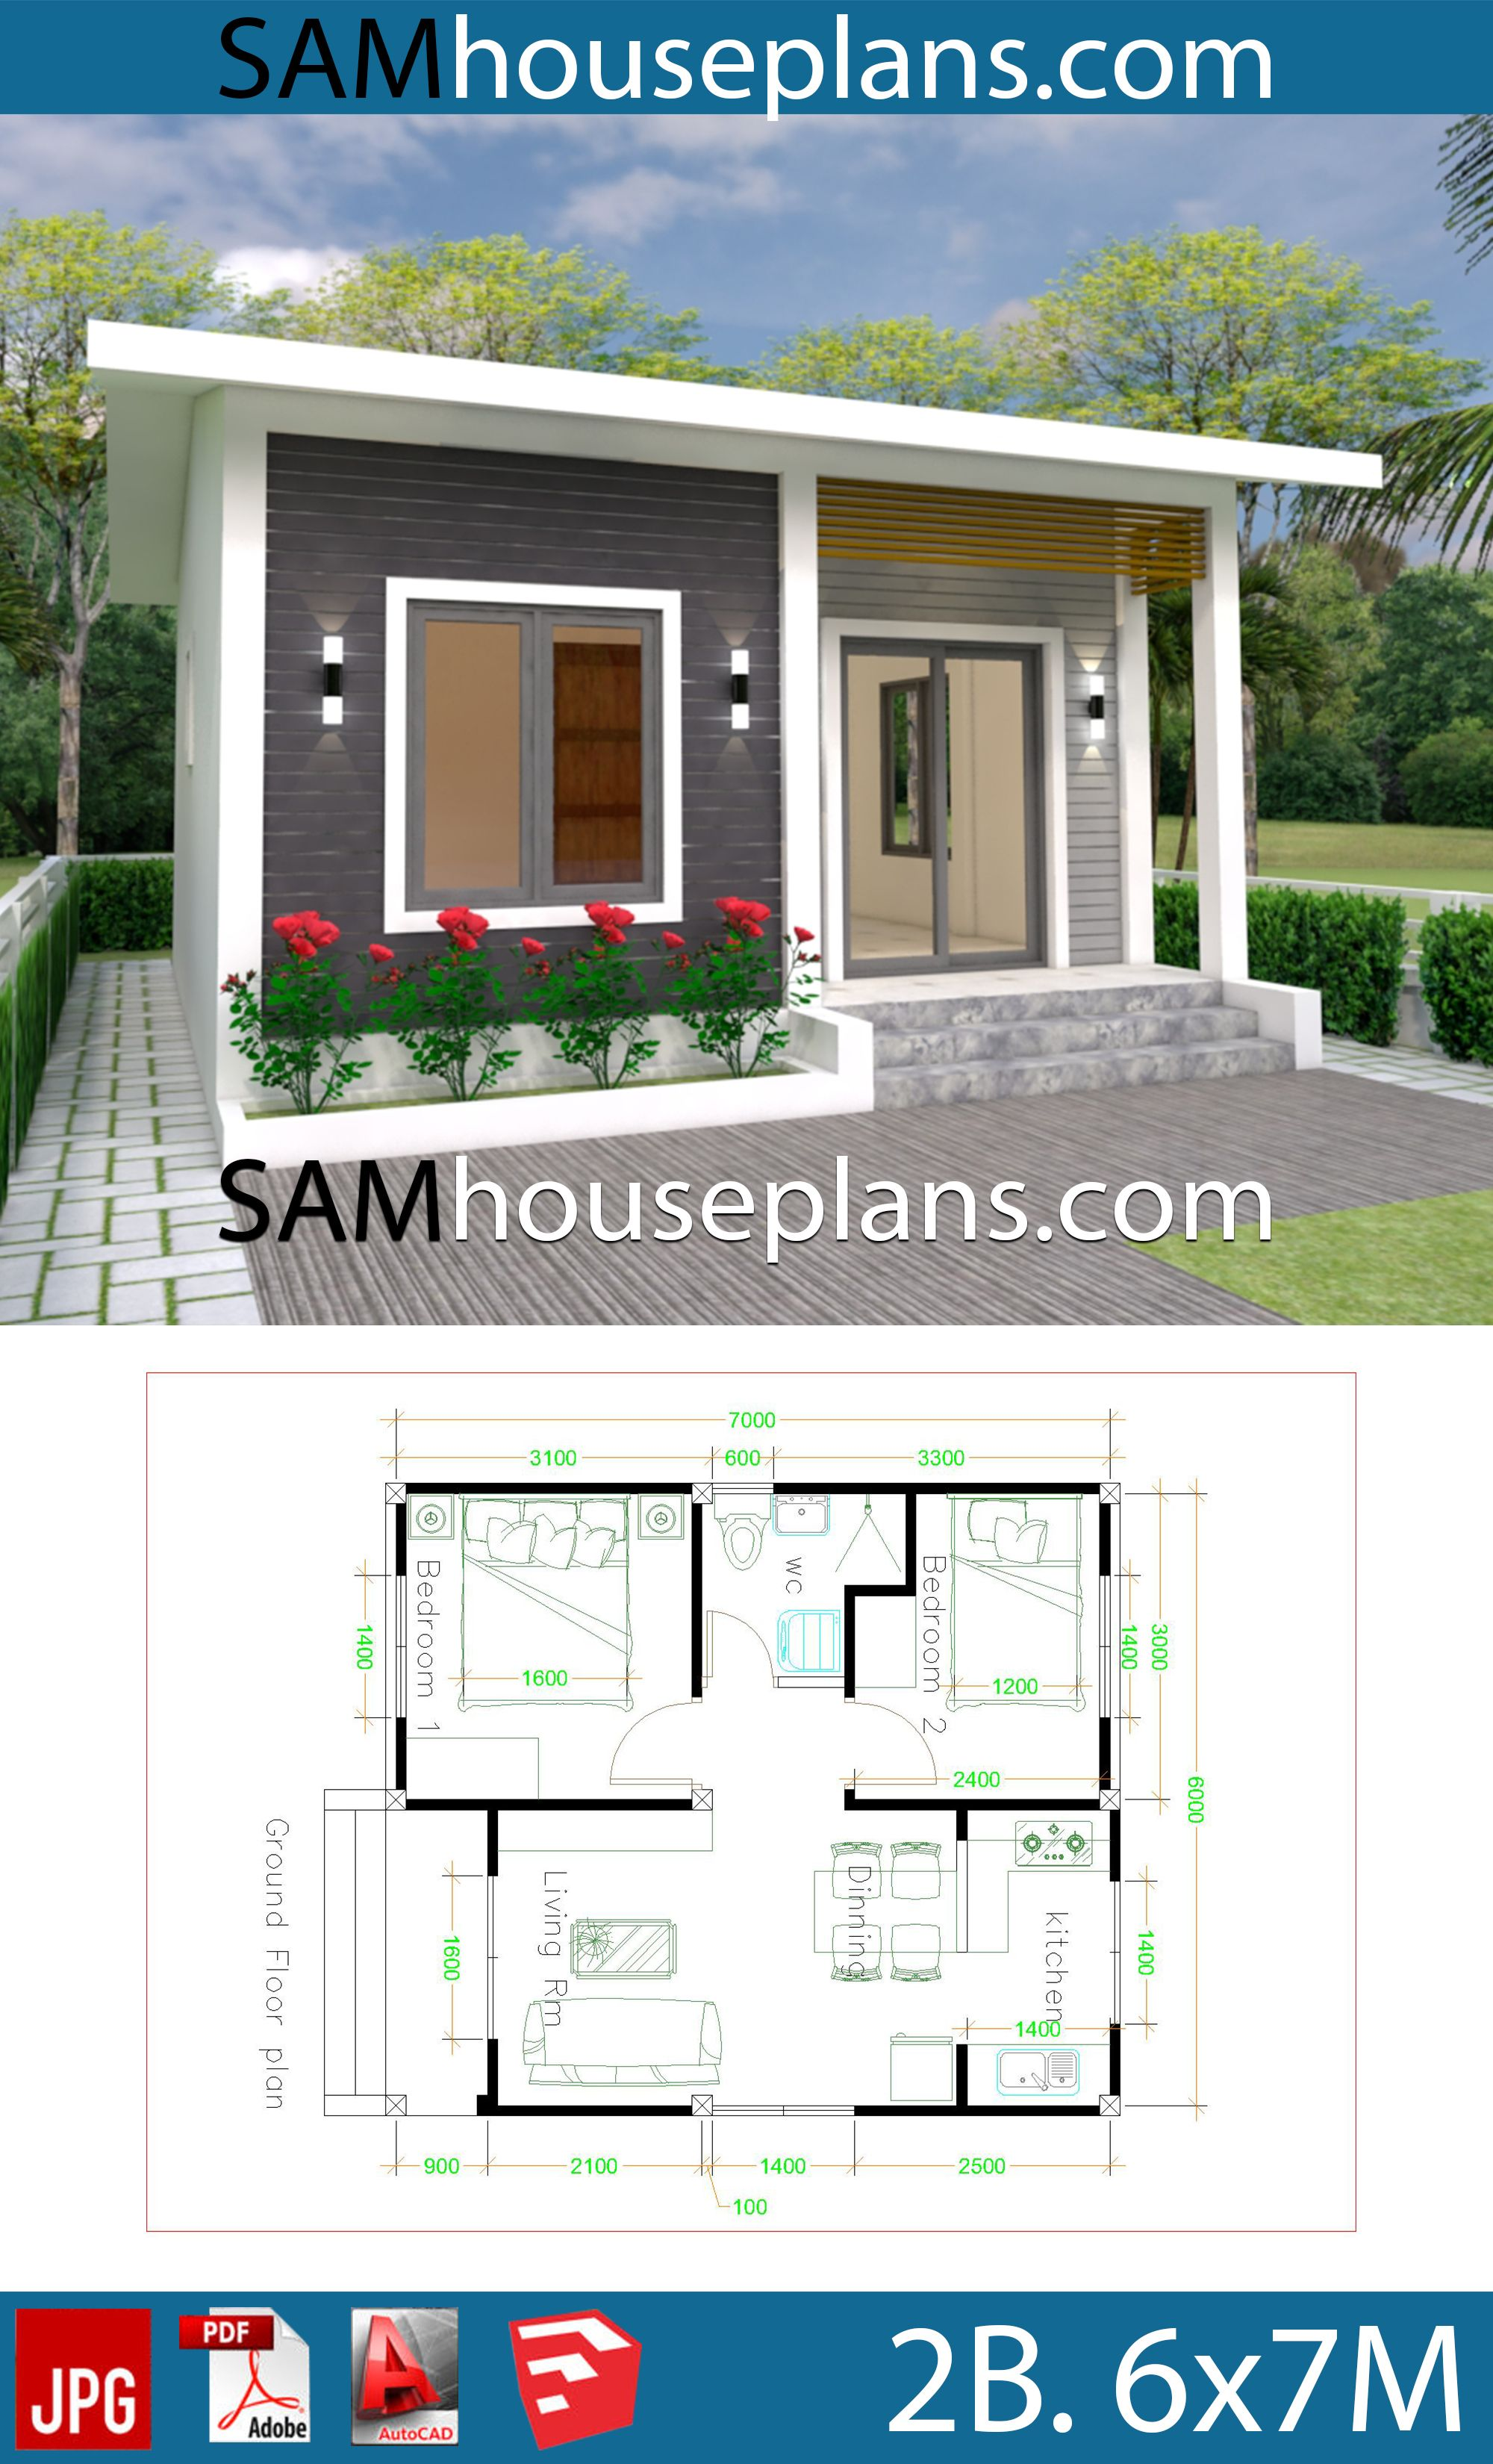 House Plans 6x7m With 2 Bedrooms House Plans Free Downloads Simple House Design House Design Bedroom House Plans